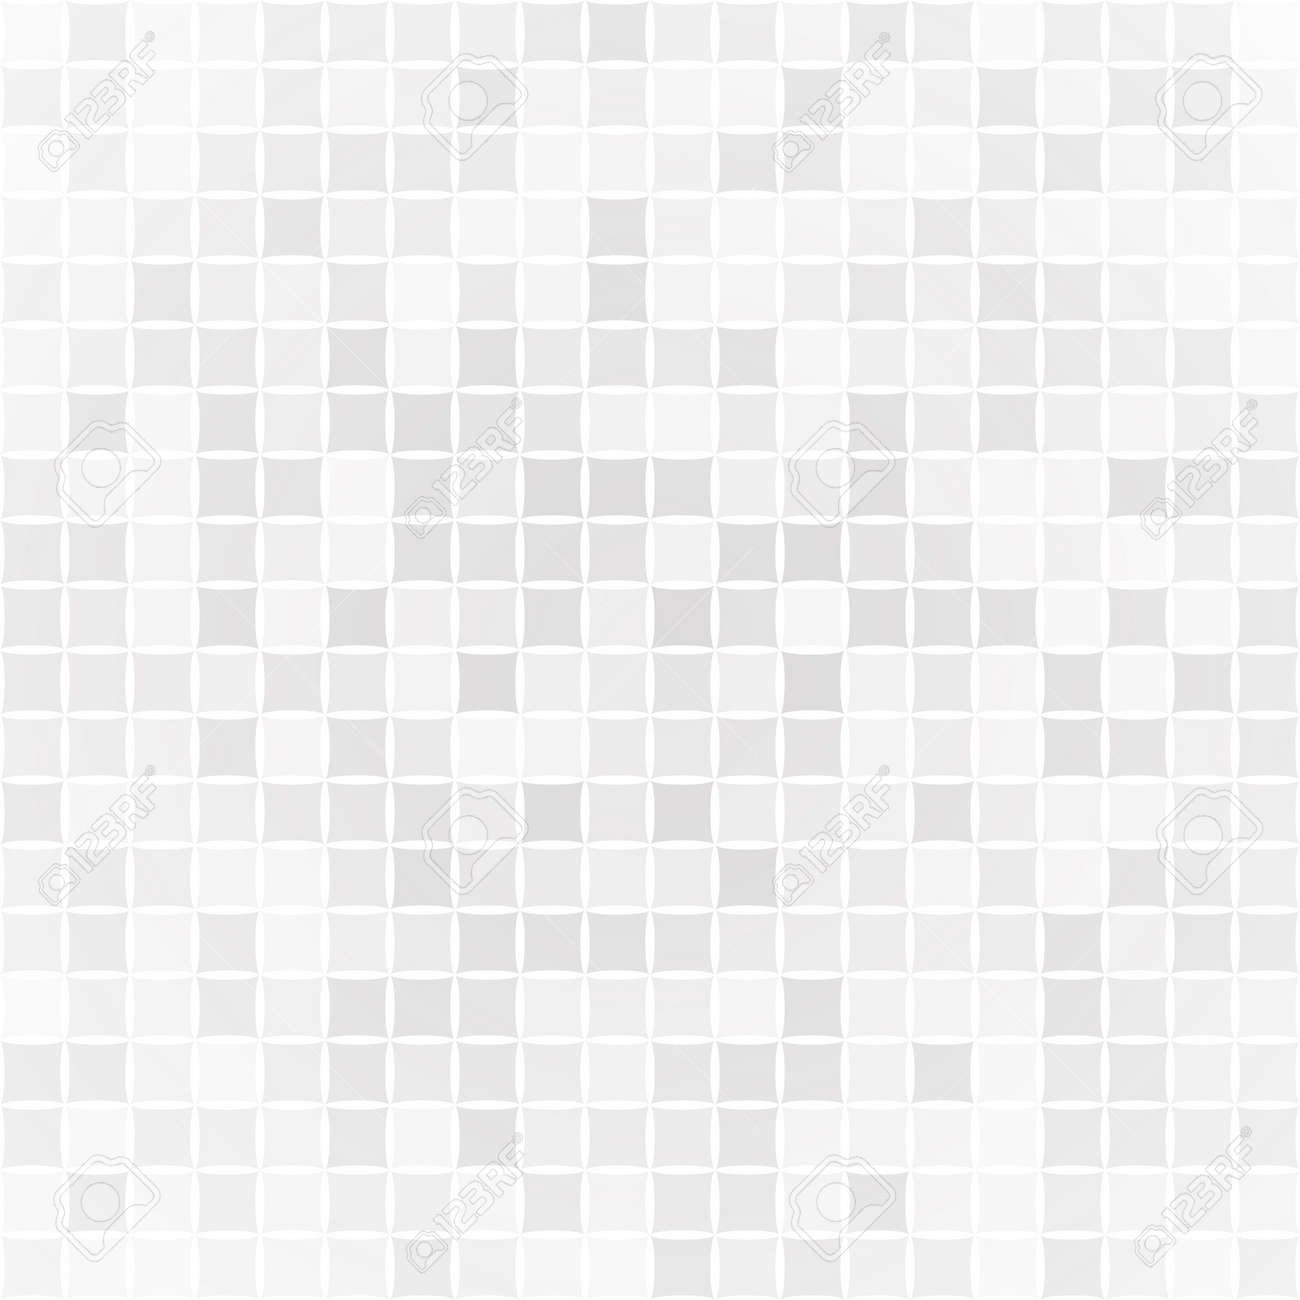 Abstract background of small squares or pixels in gray colors - 146487012